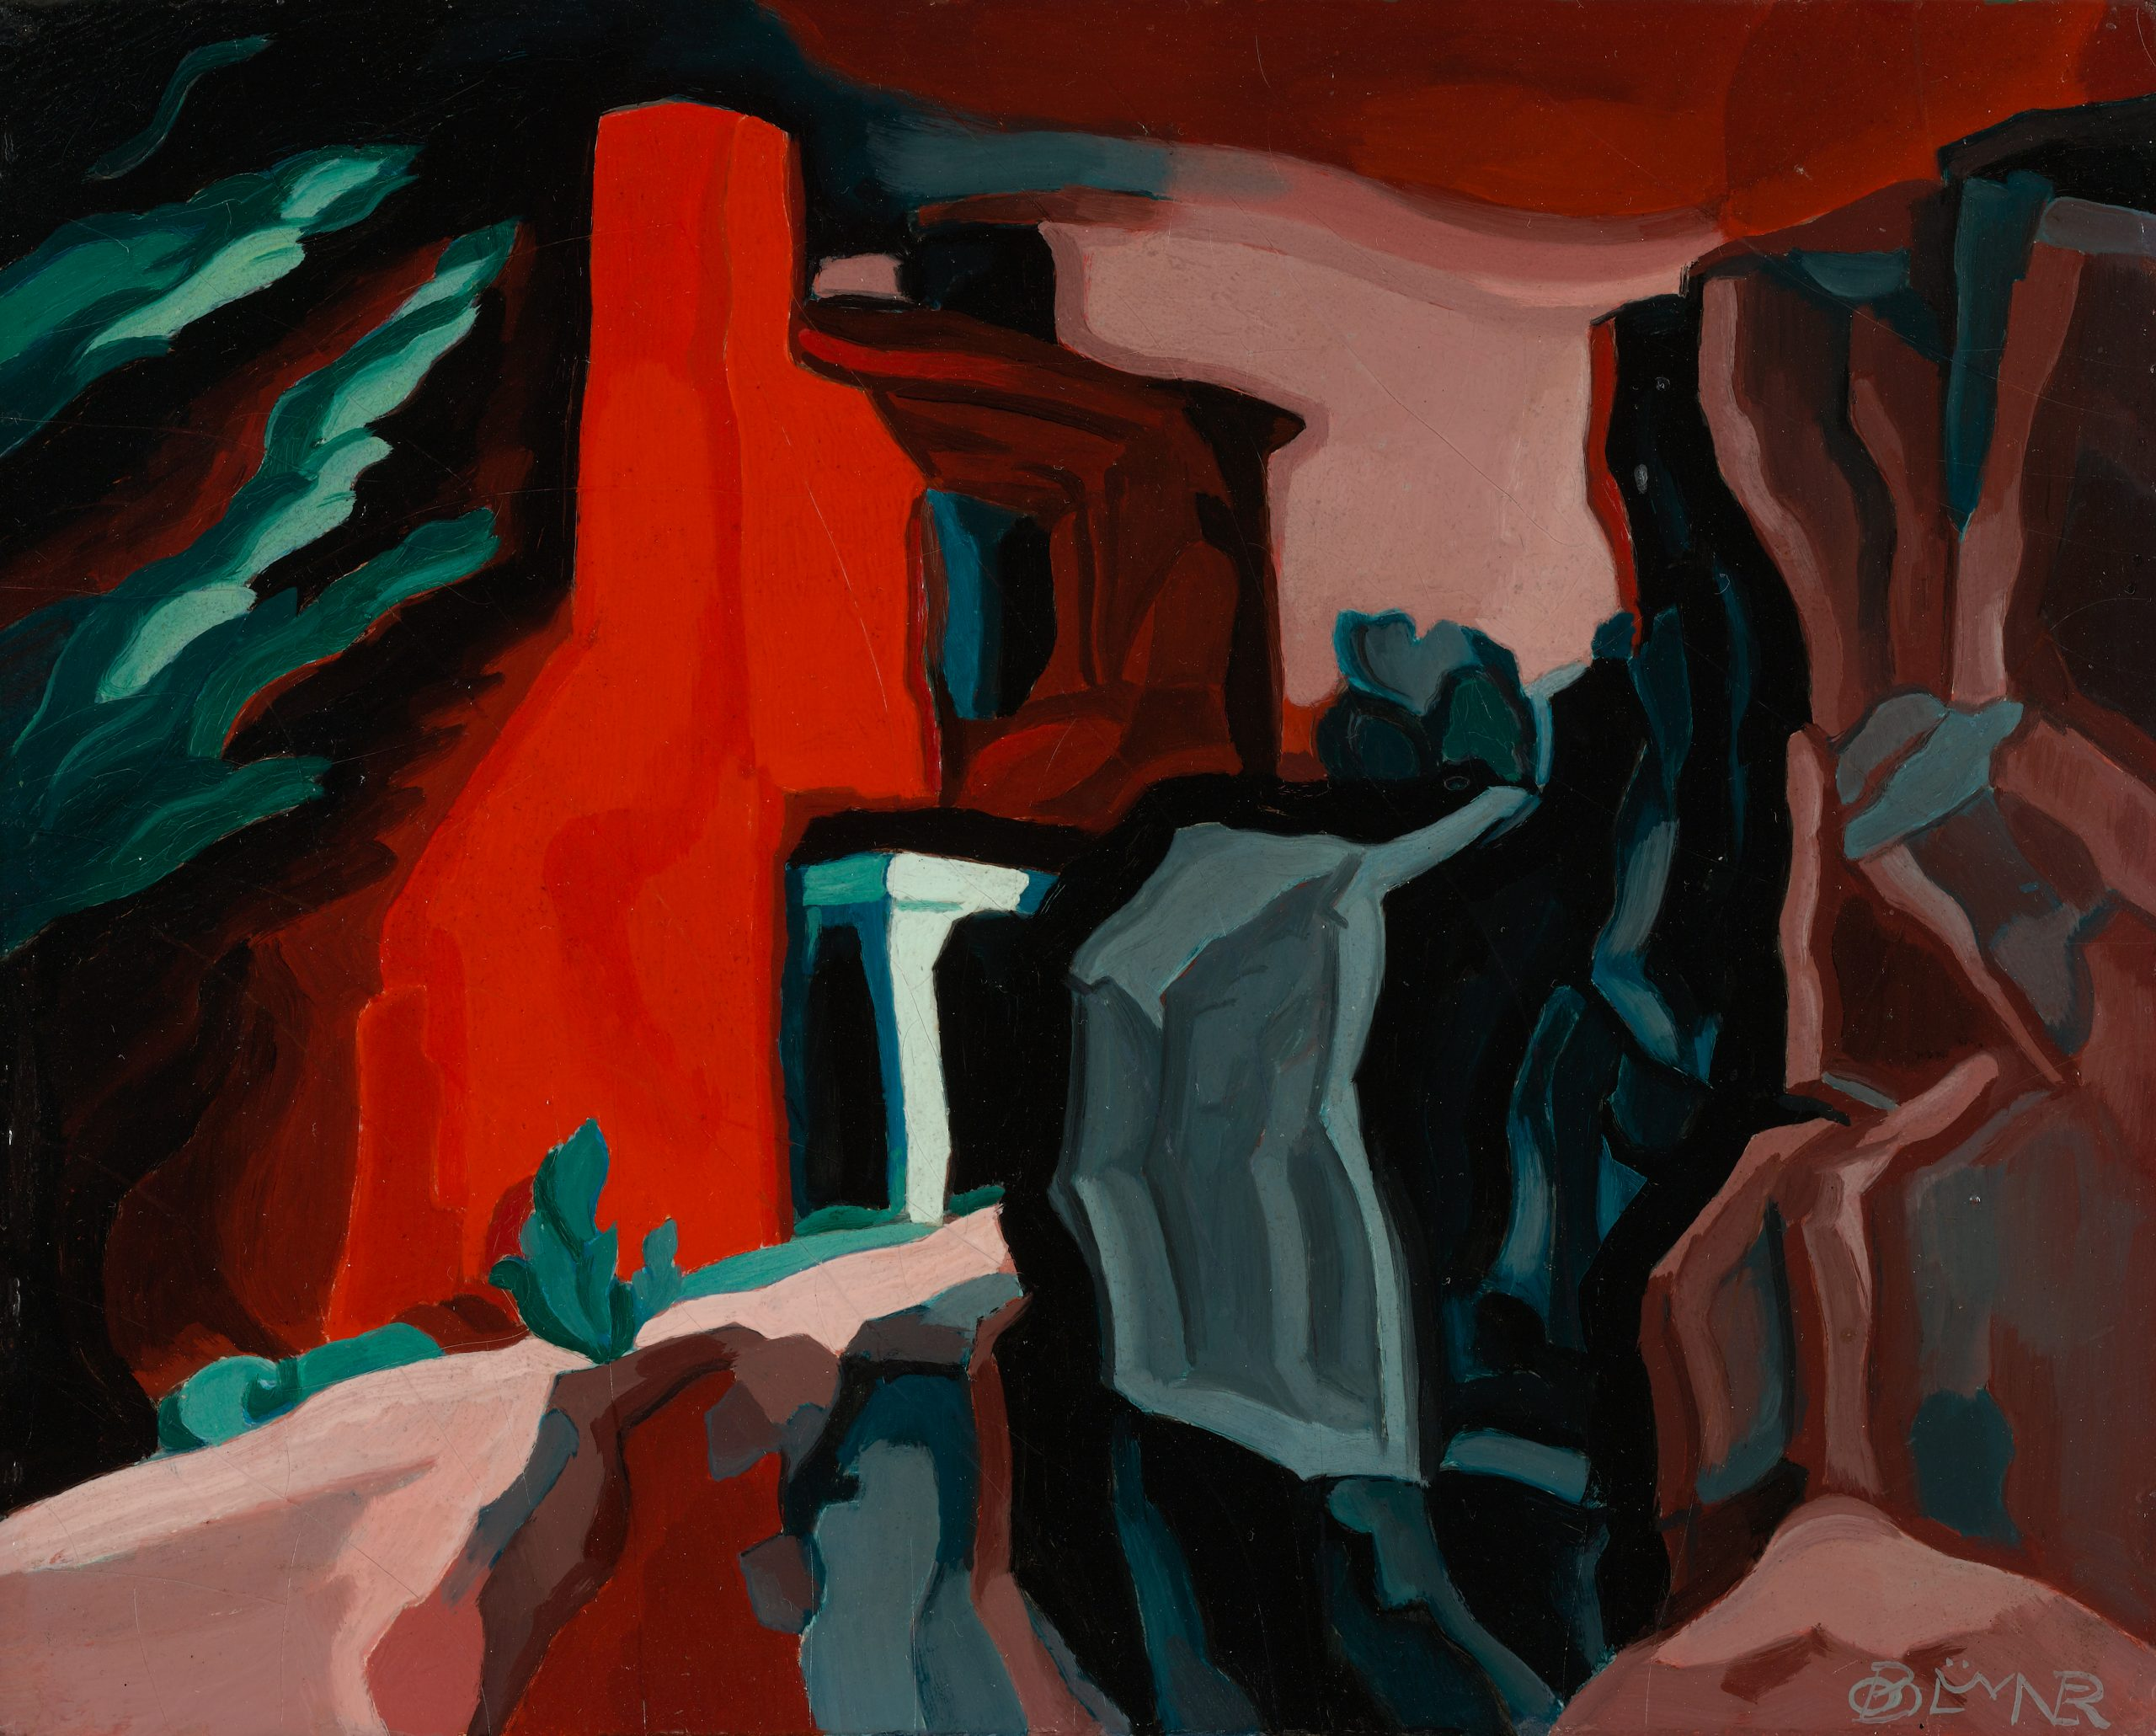 A narrow path leads into a red structure surrounded by tall, jagged rocks and small green shrubs.